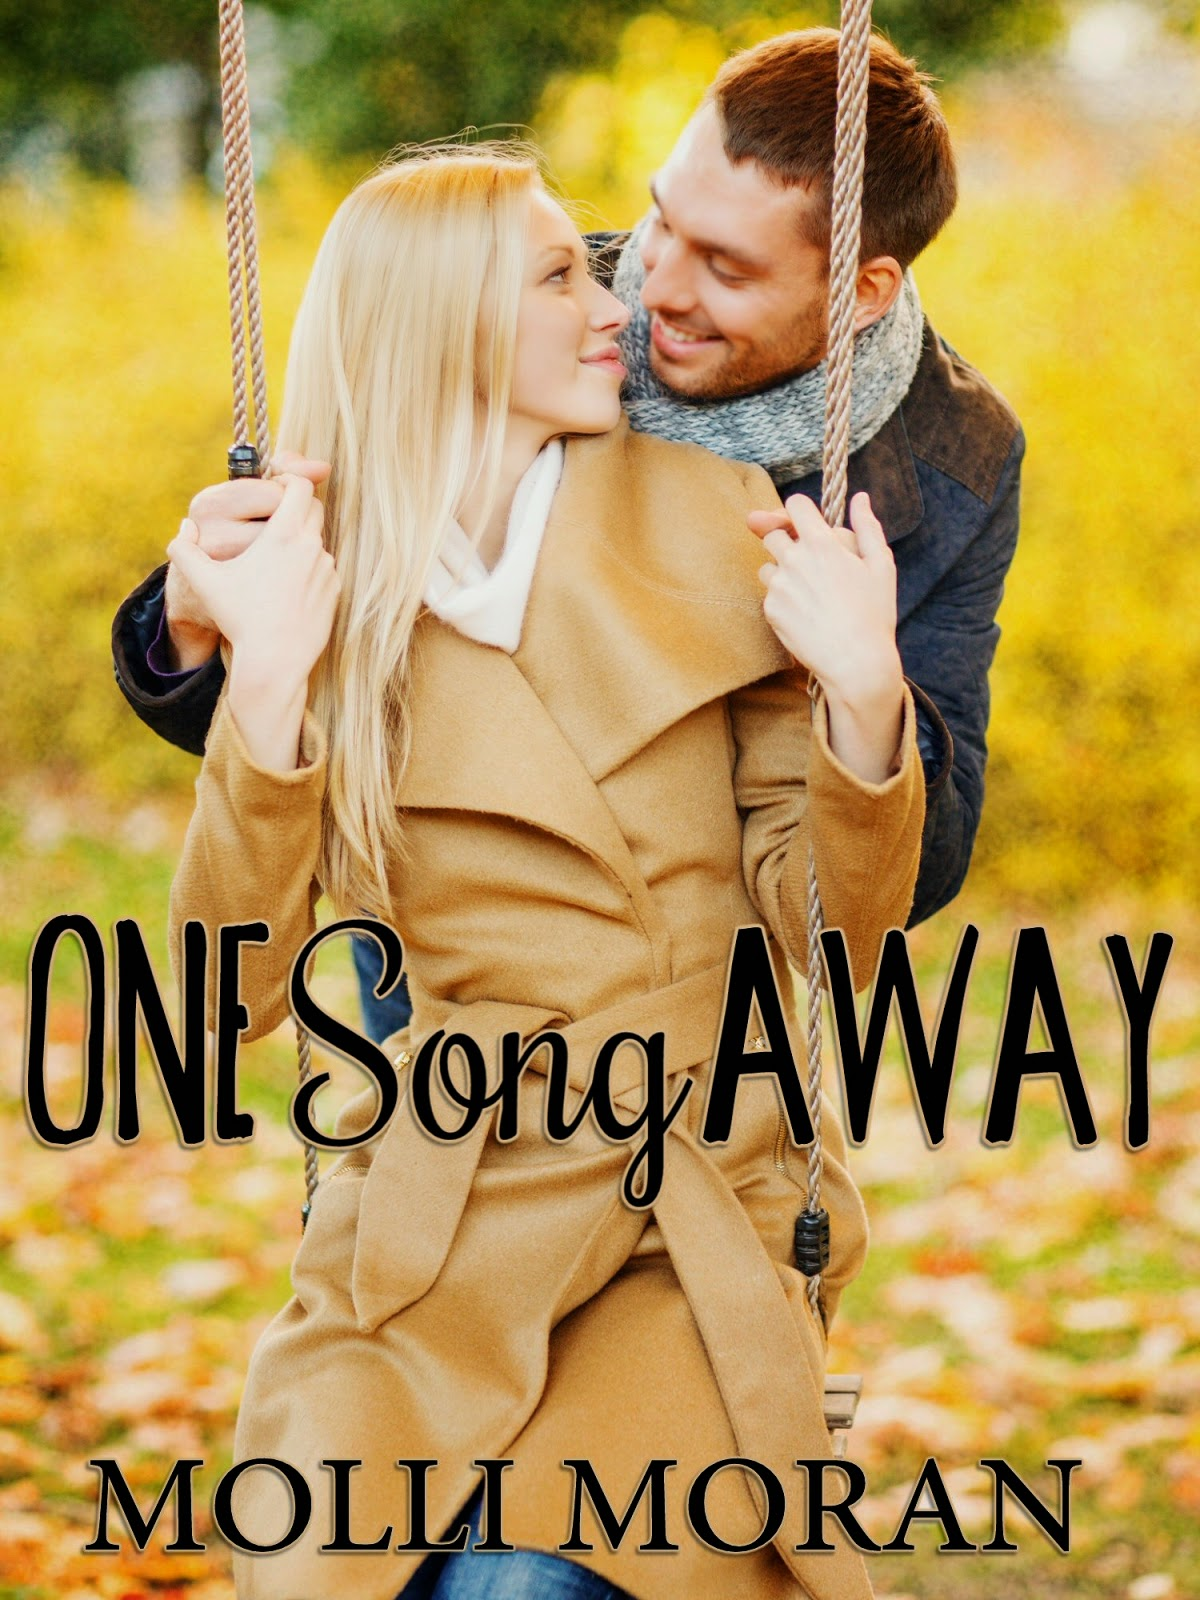 http://www.whatsbeyondforks.com/2014/12/tour-review-of-one-song-away-by-molli.html